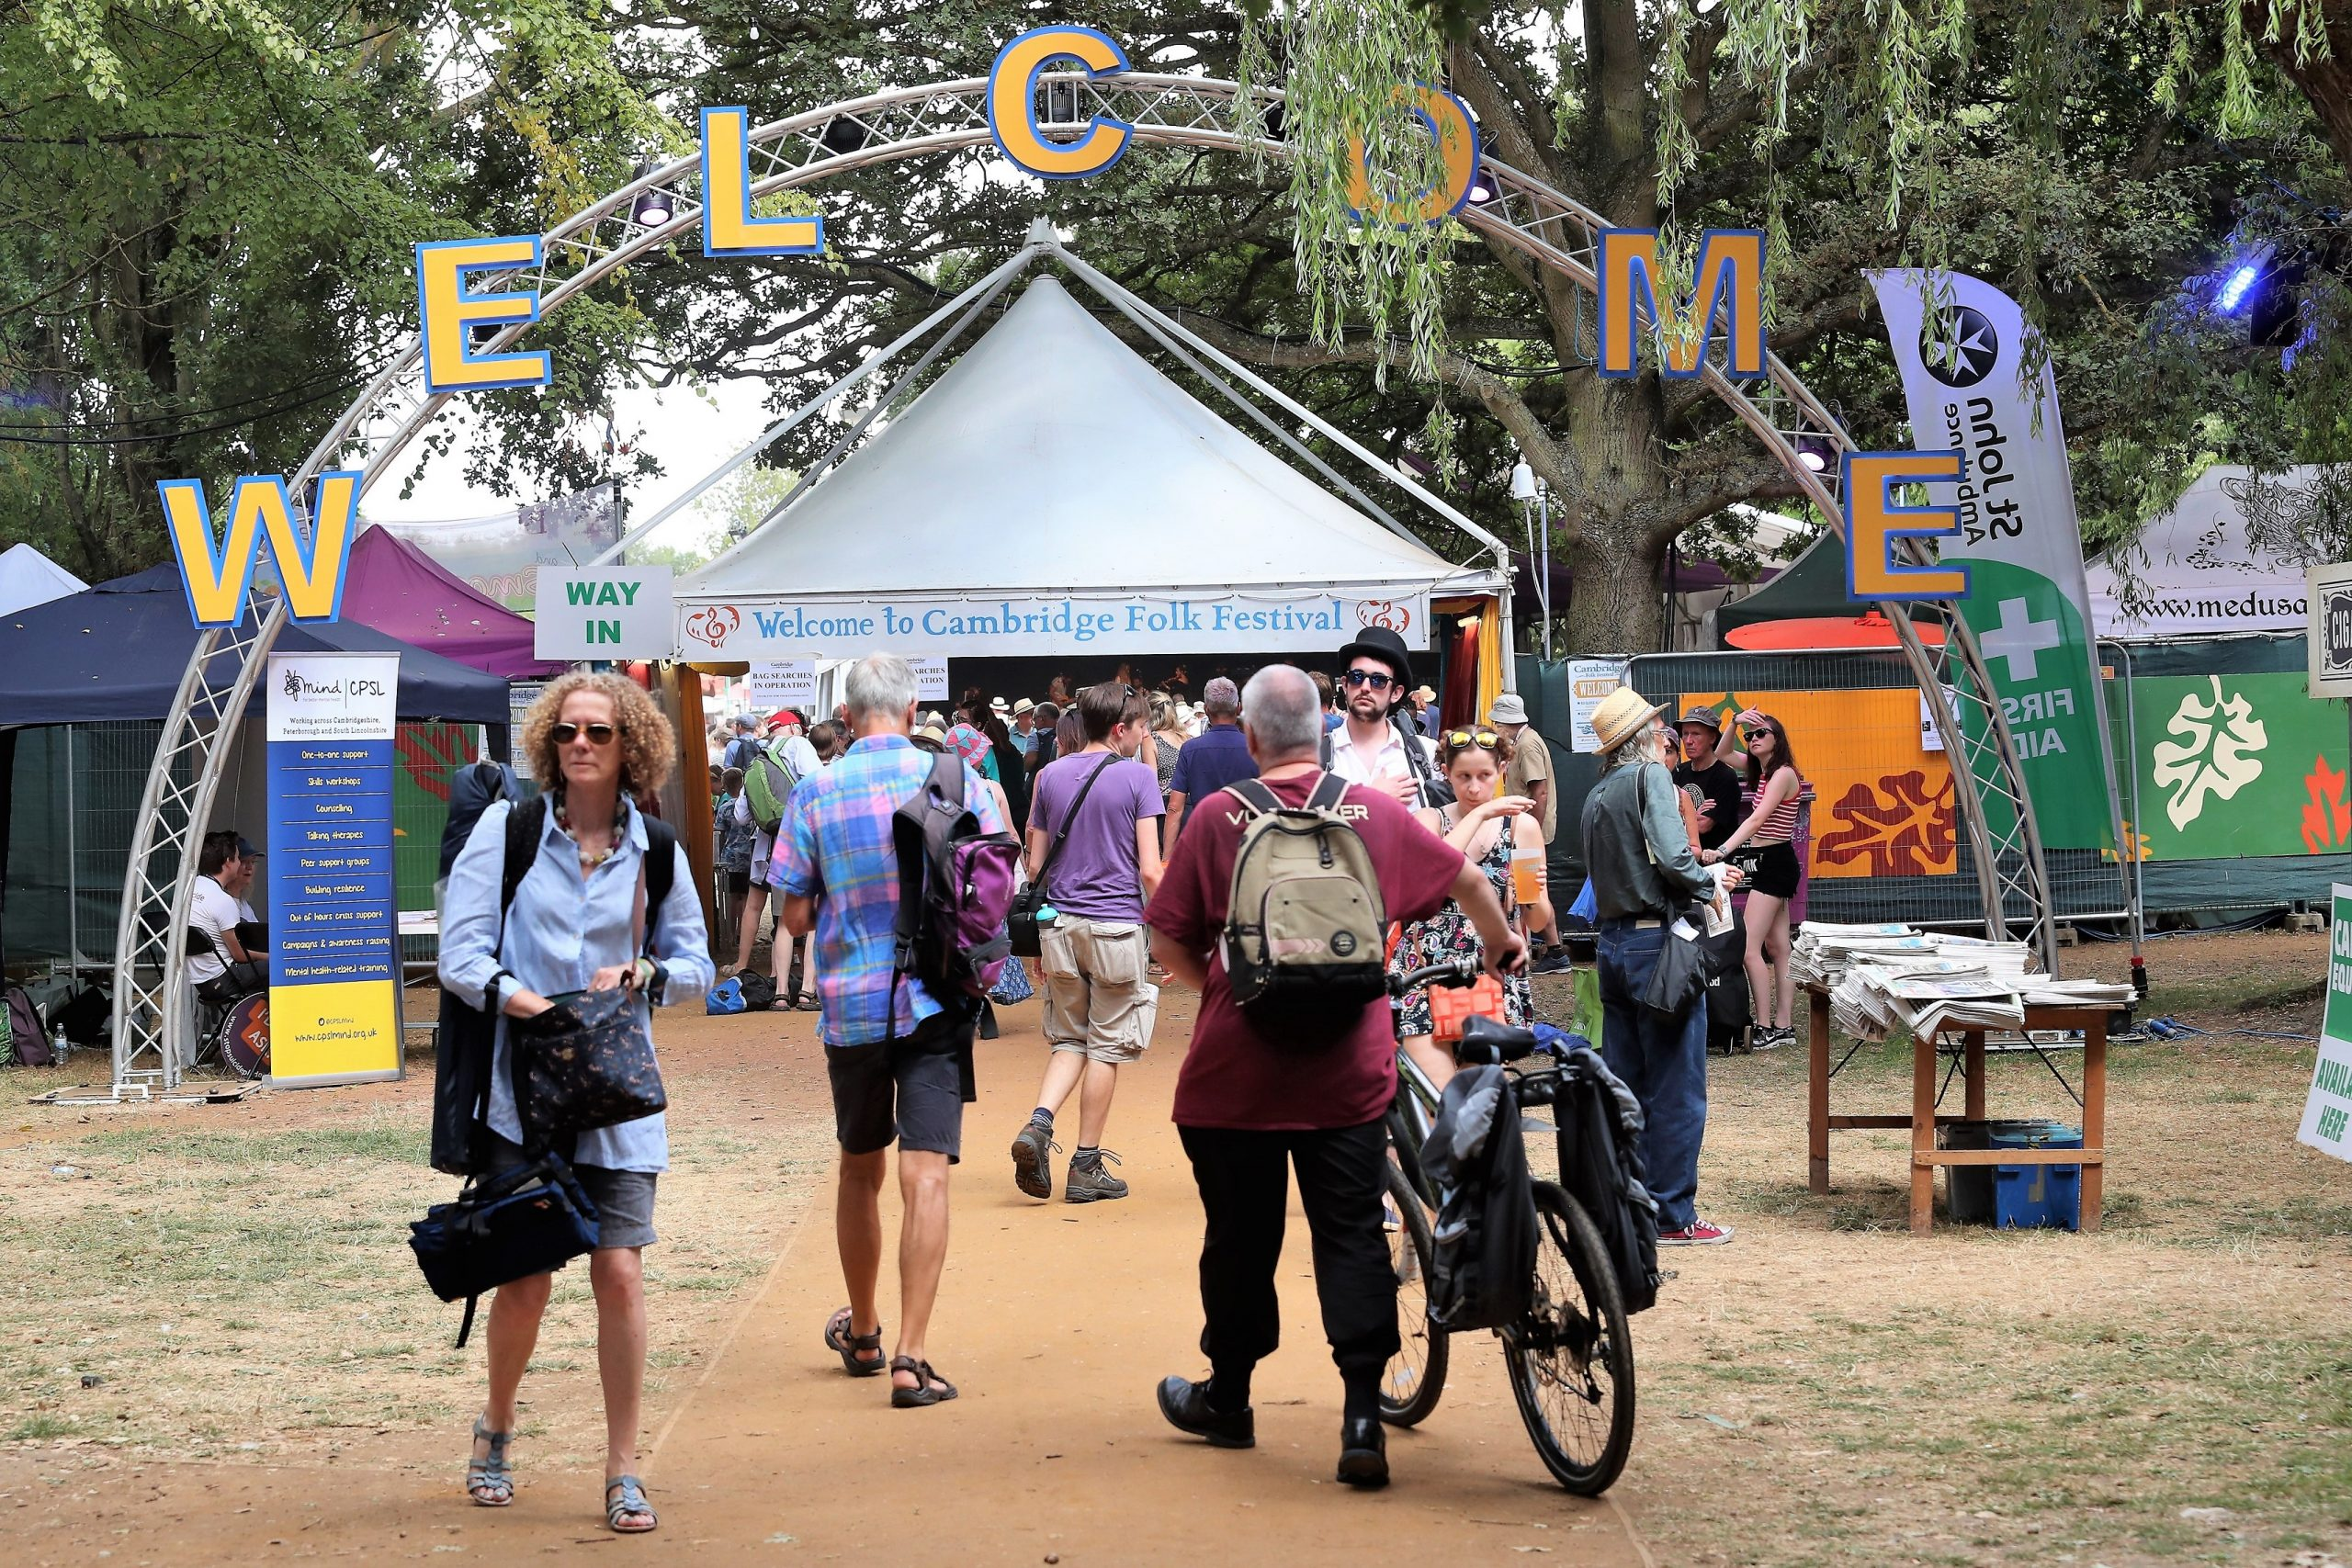 Cambridge Folk Festival At Home 2020 Will Be Taking Place At The End Of The Month